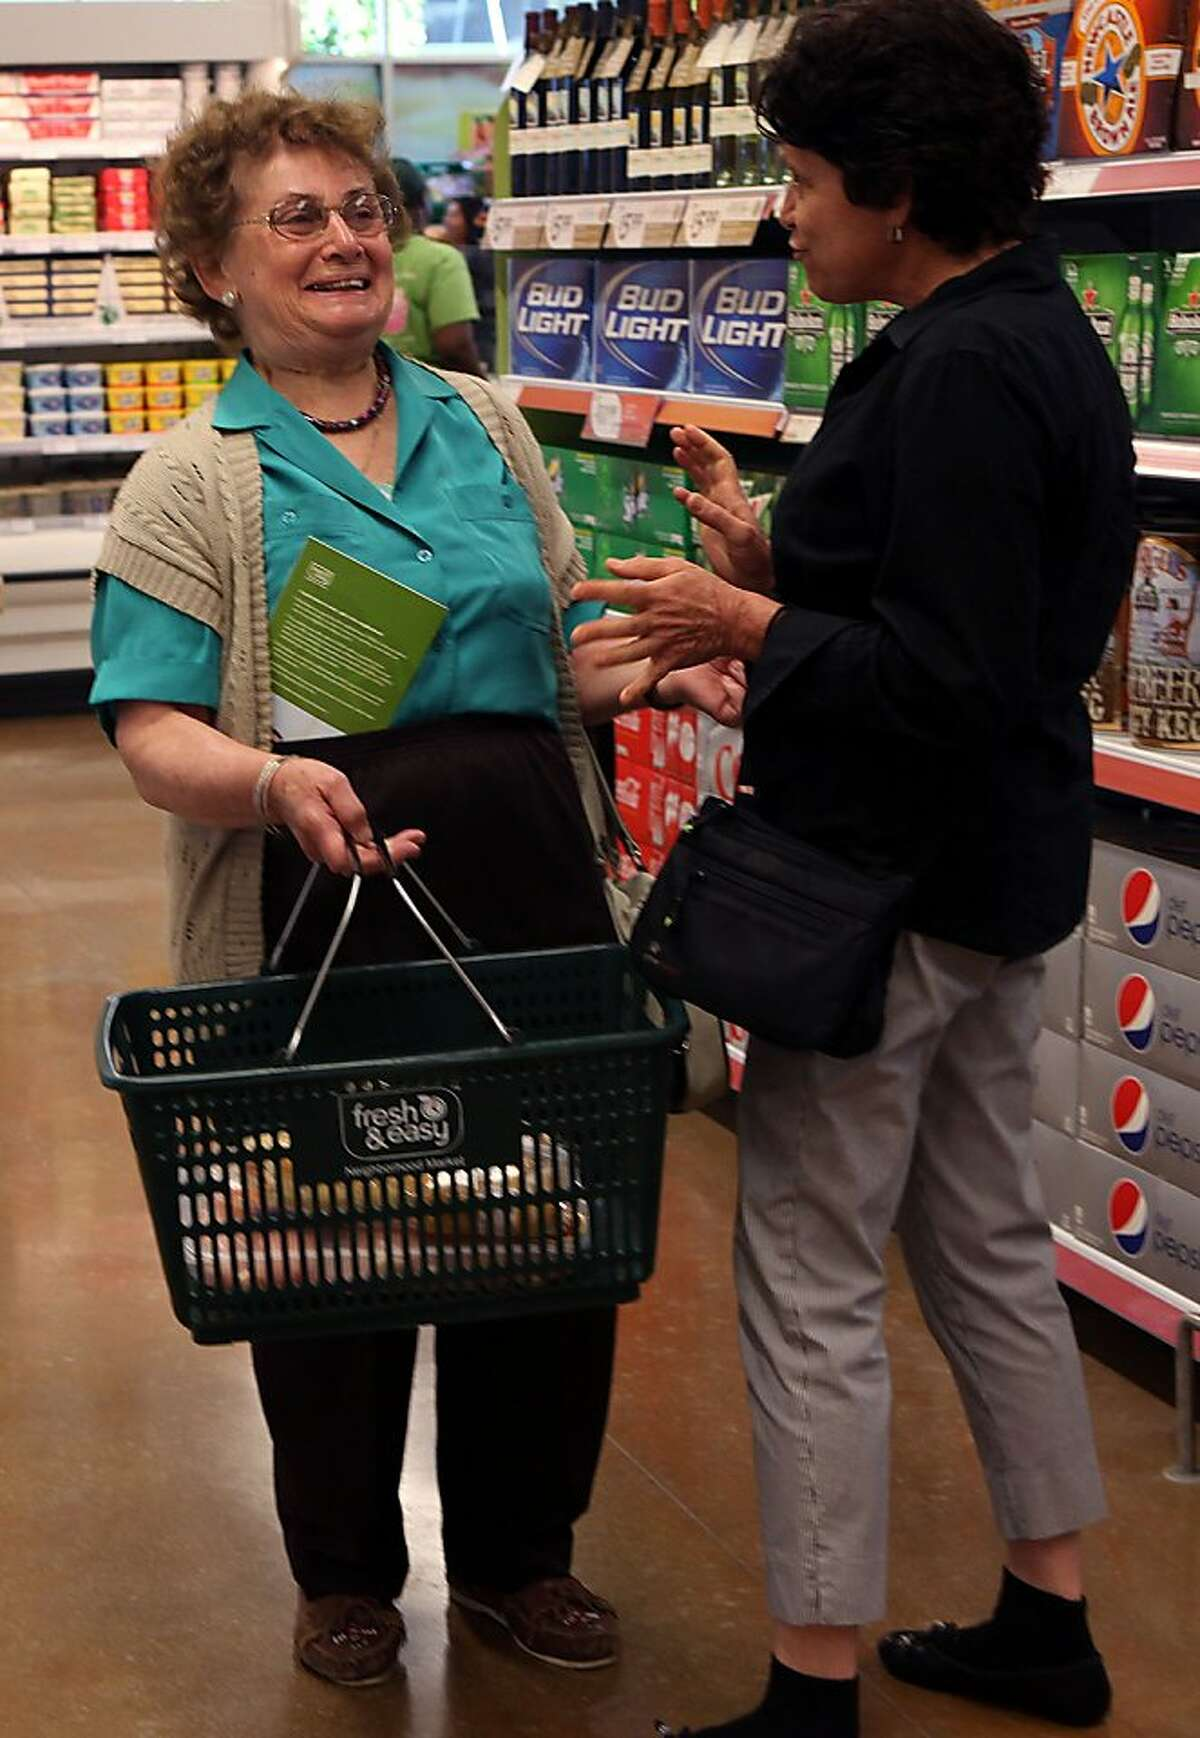 Barbara Fenech (left), commissioner of nearby St. Paul of Shipwreck Church, at the opening of Fresh & Easy Neighborhood Market, the first new grocery store in Bayview-Hunters Point neighborhood in over 20 years in San Francisco, Calif., on Wednesday, August 24, 2011.